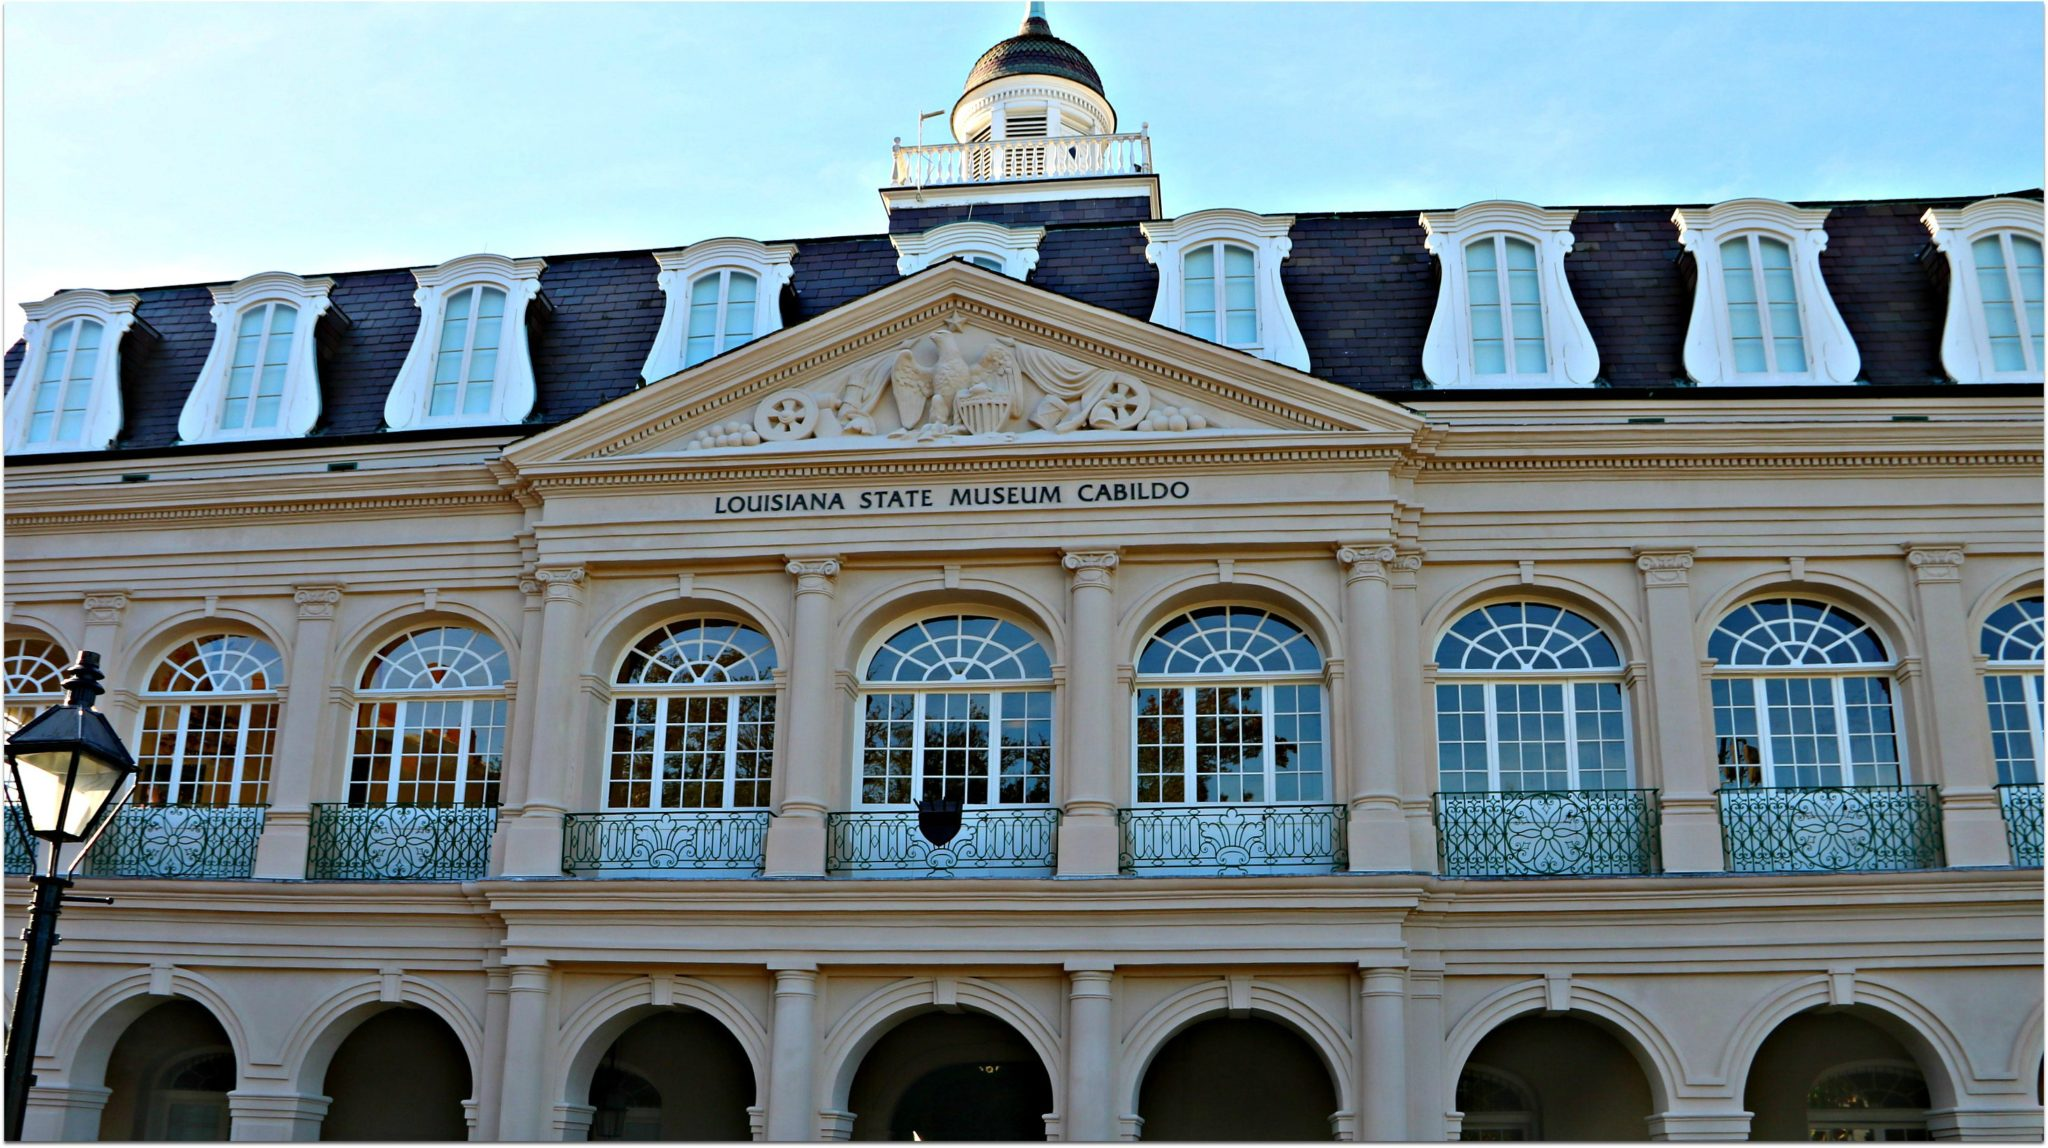 French Quarter Historic Buildings, The Cabildo